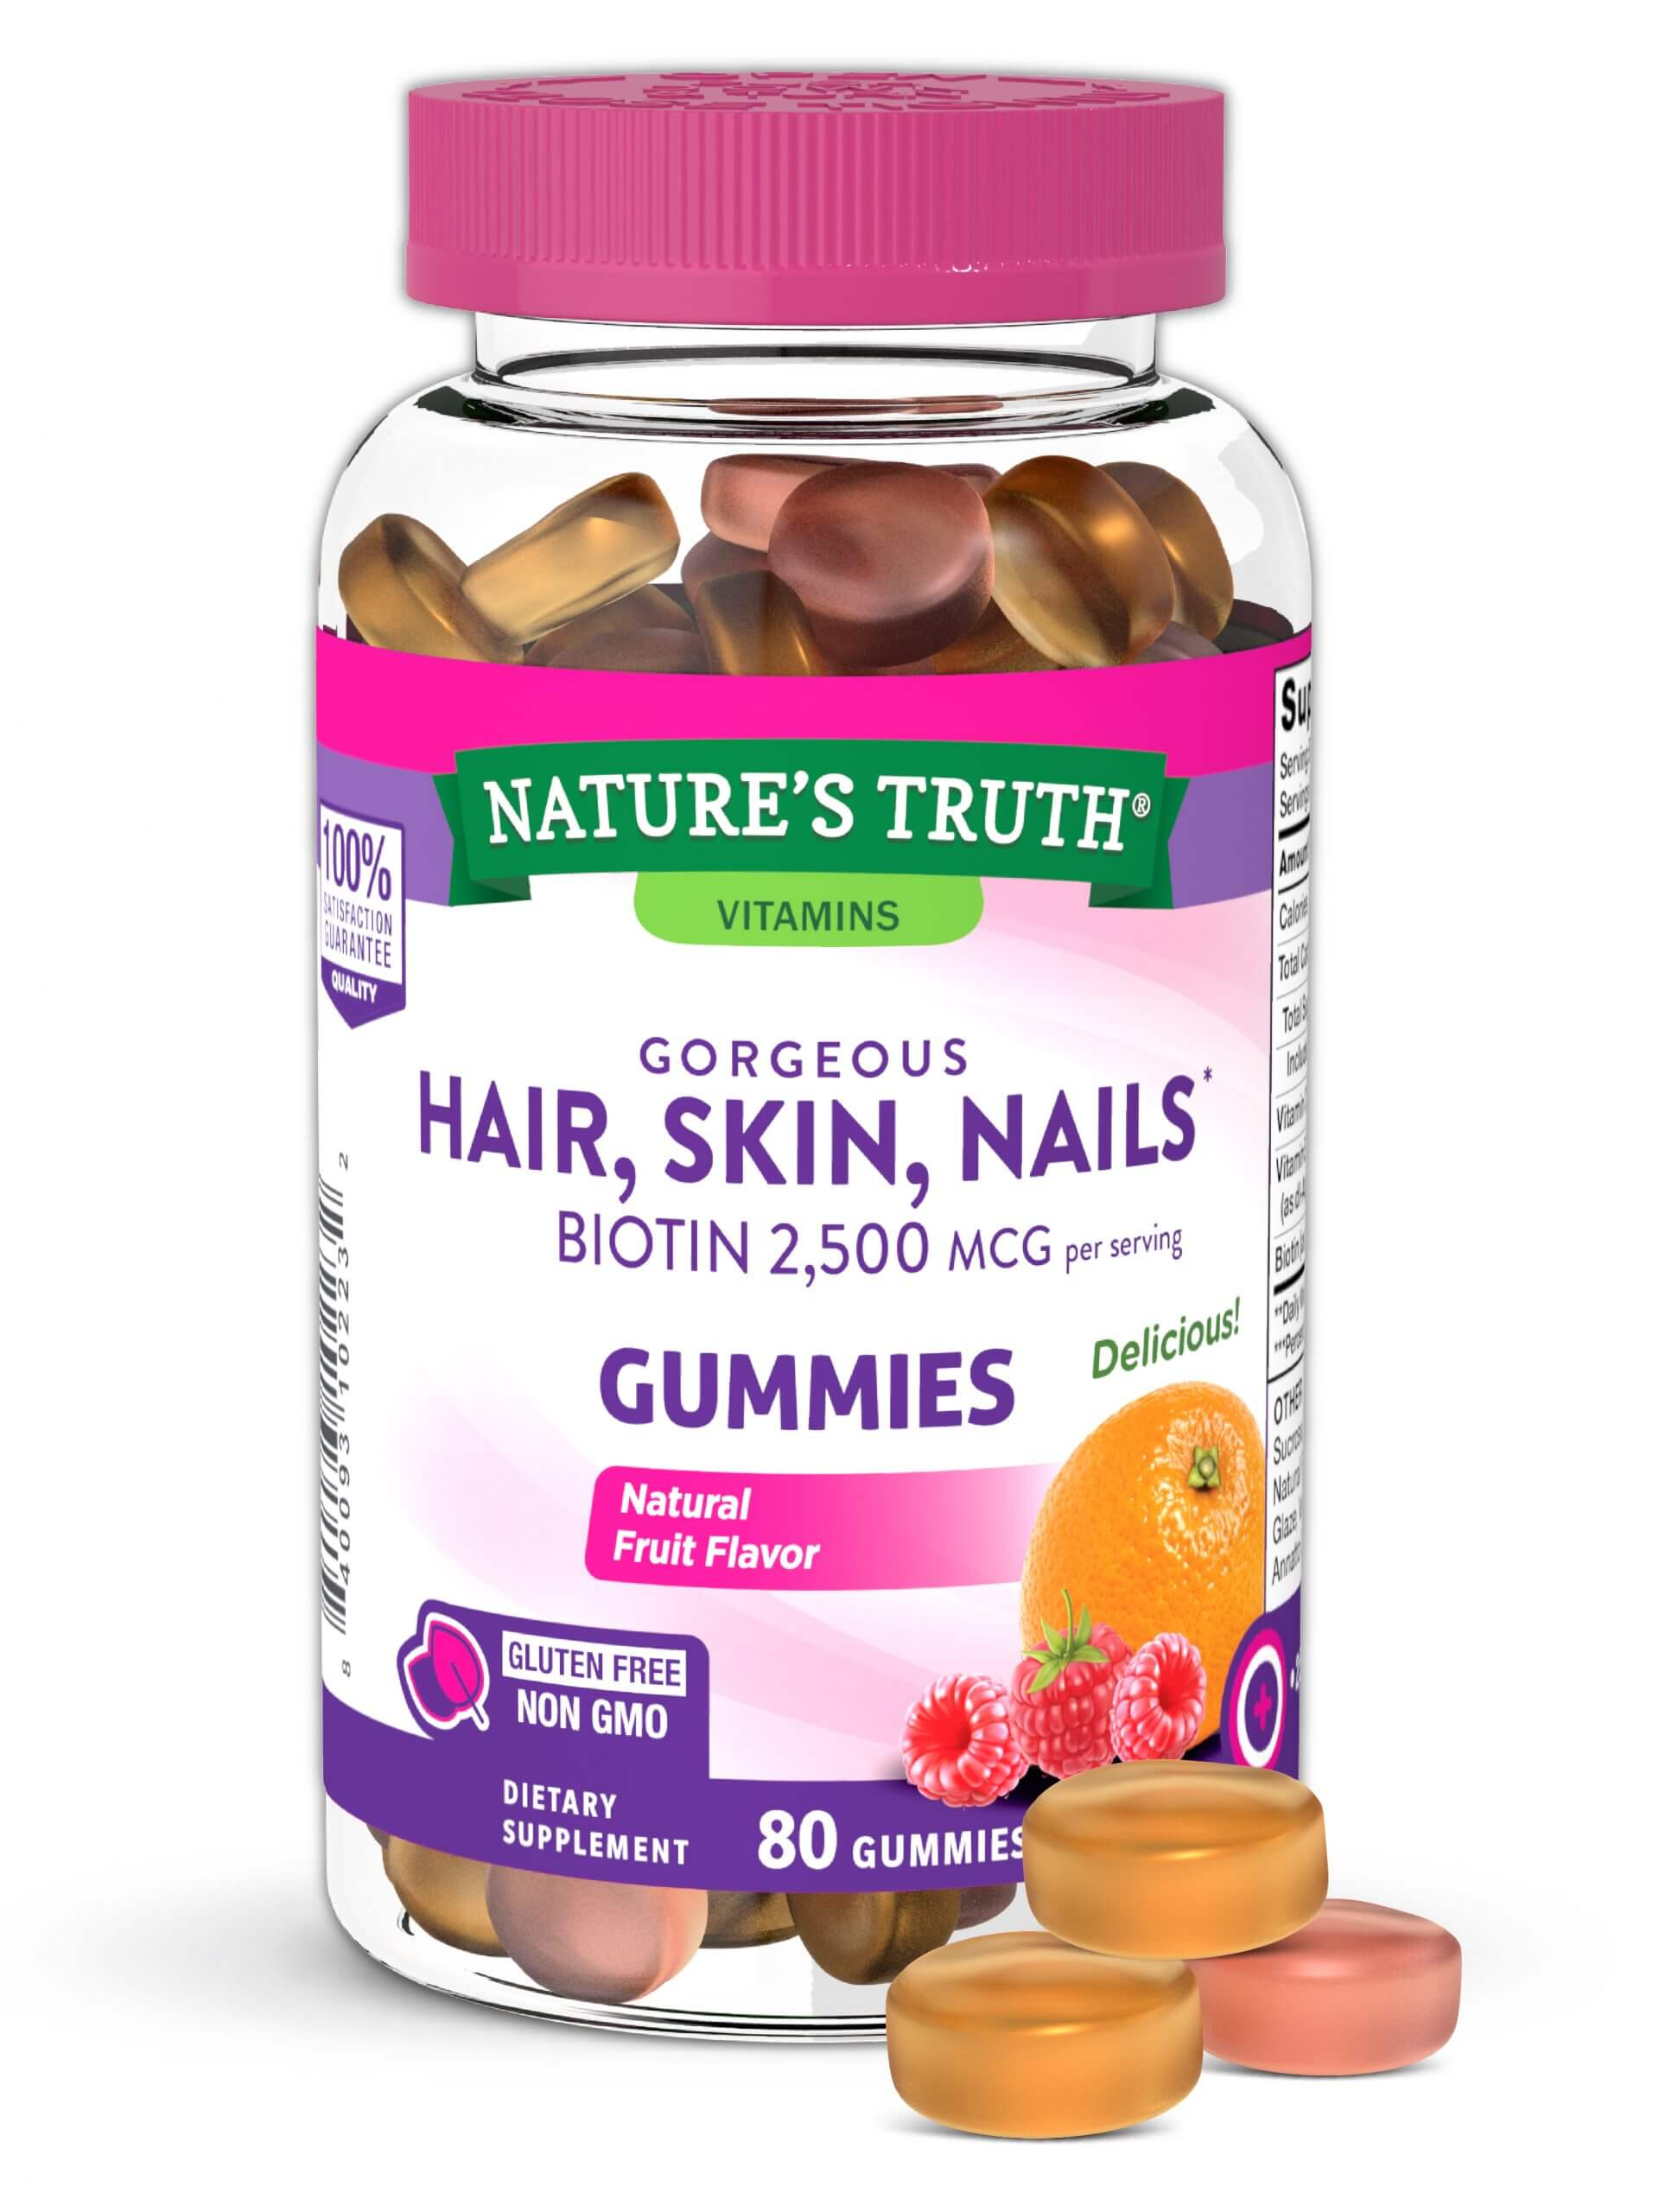 Gorgeous Hair, Skin & Nails* Gummies